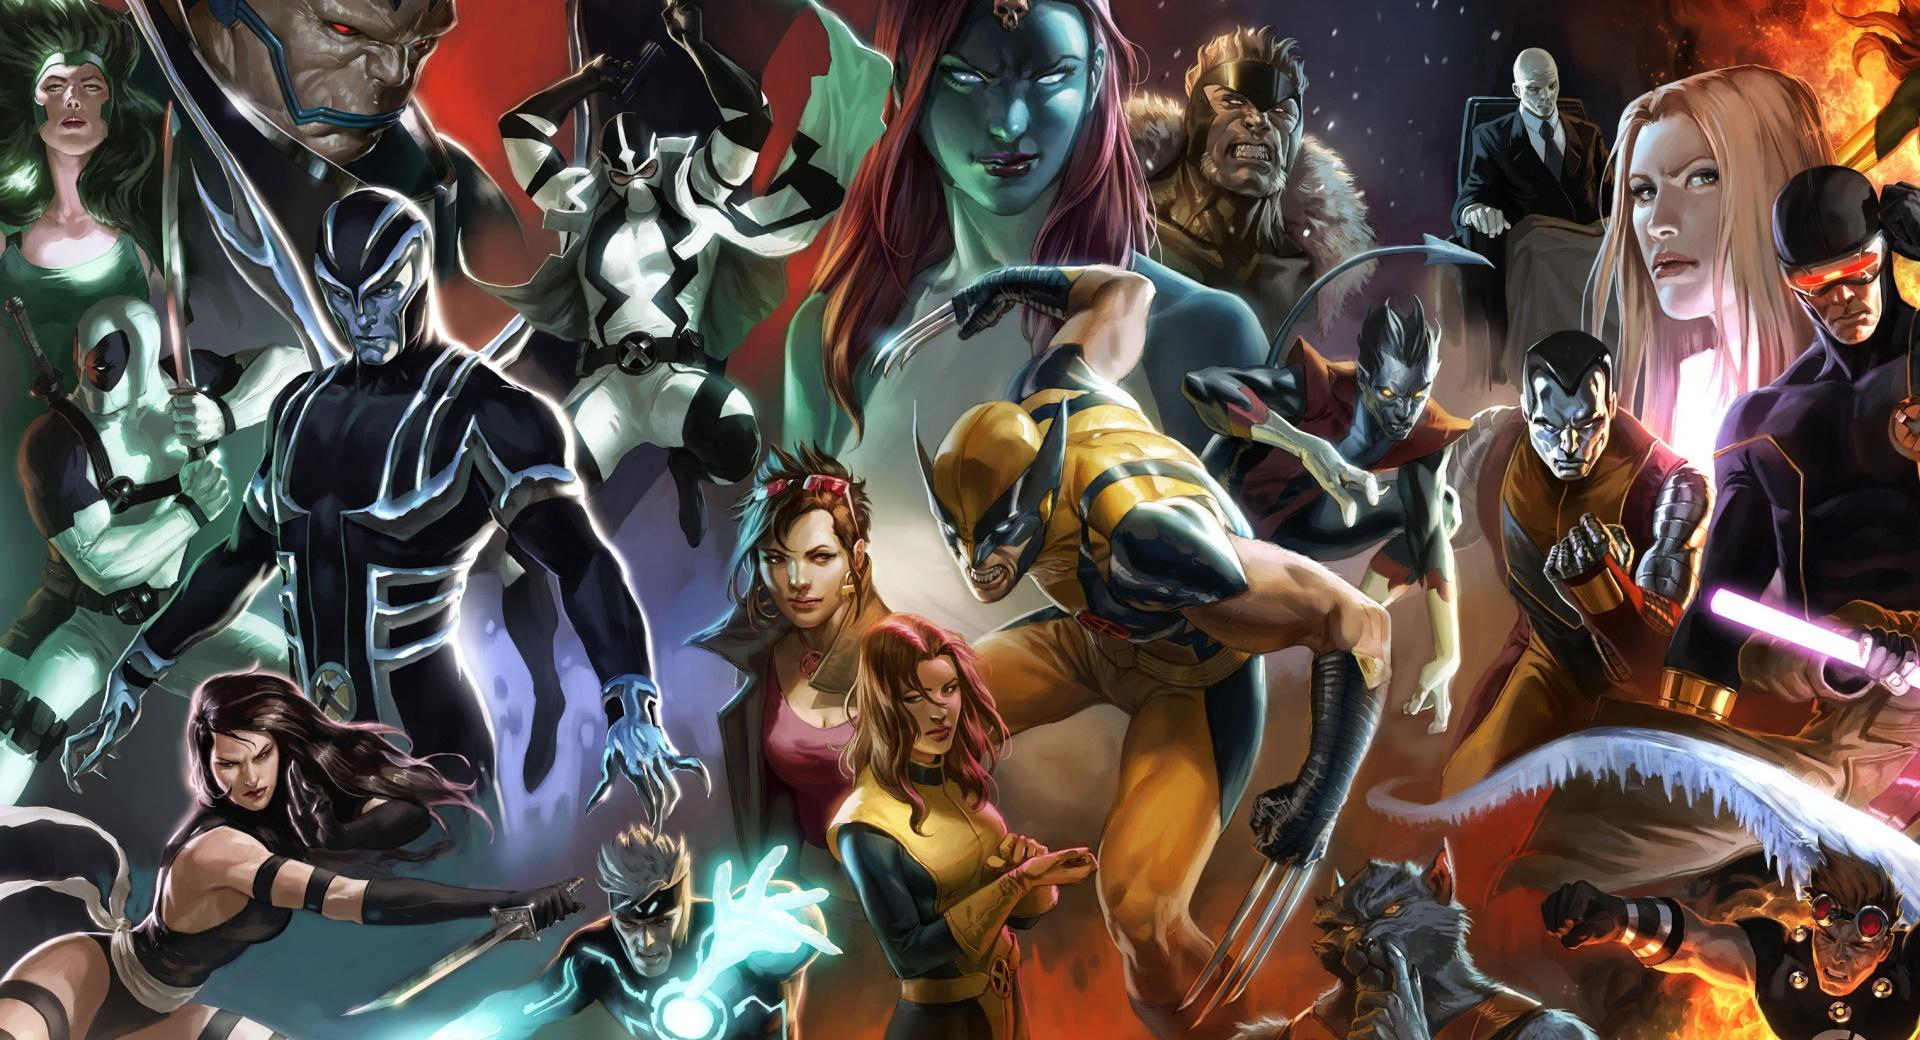 X-Men Characters wallpapers HD quality